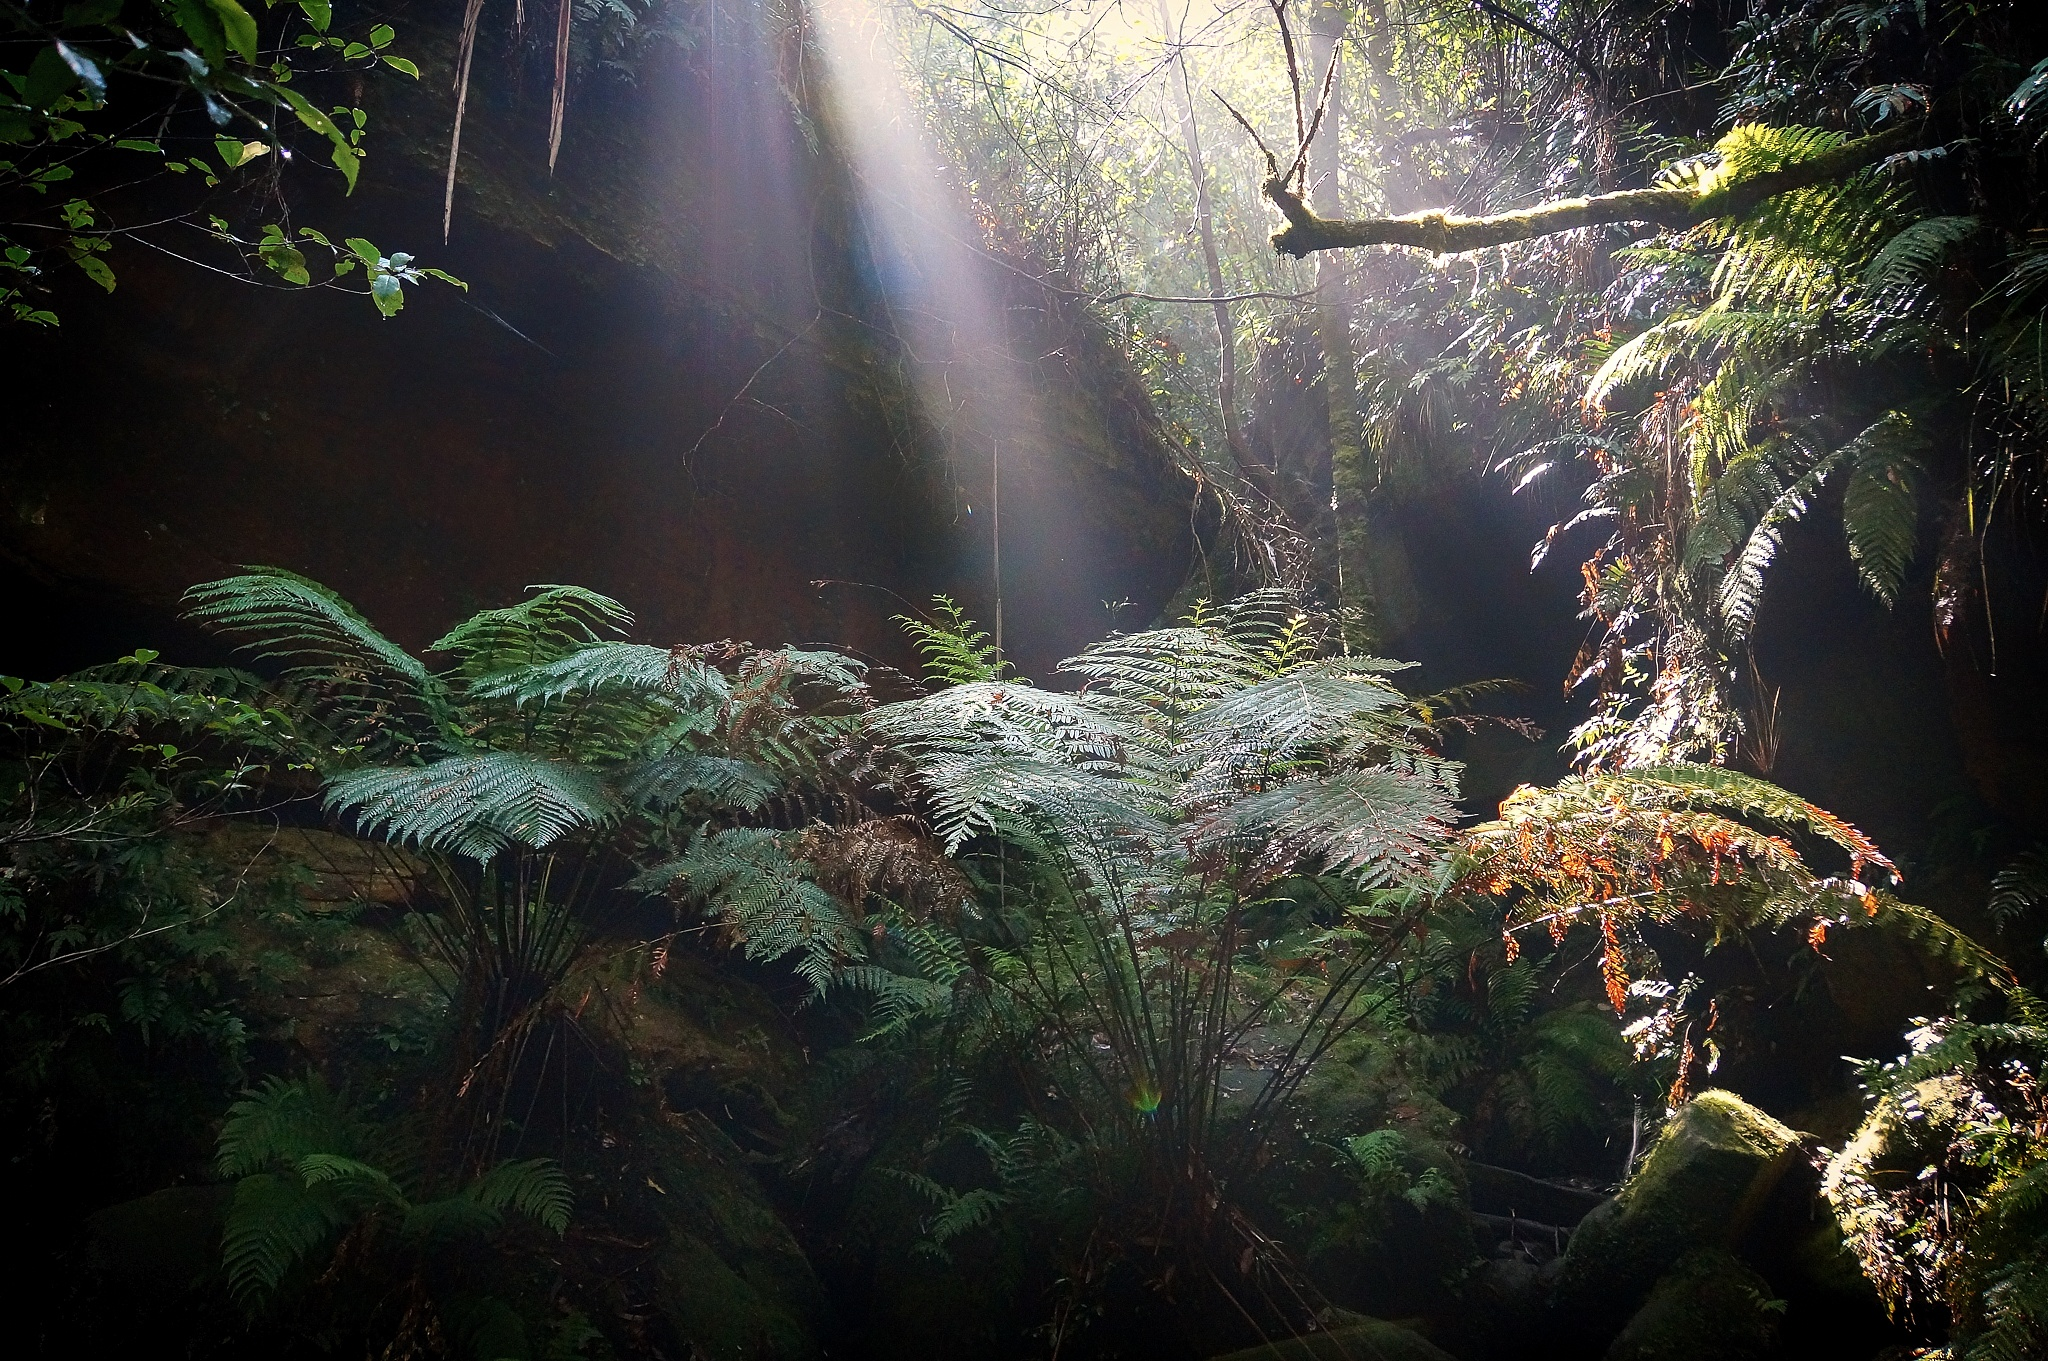 Light Rays by Peter Medbury